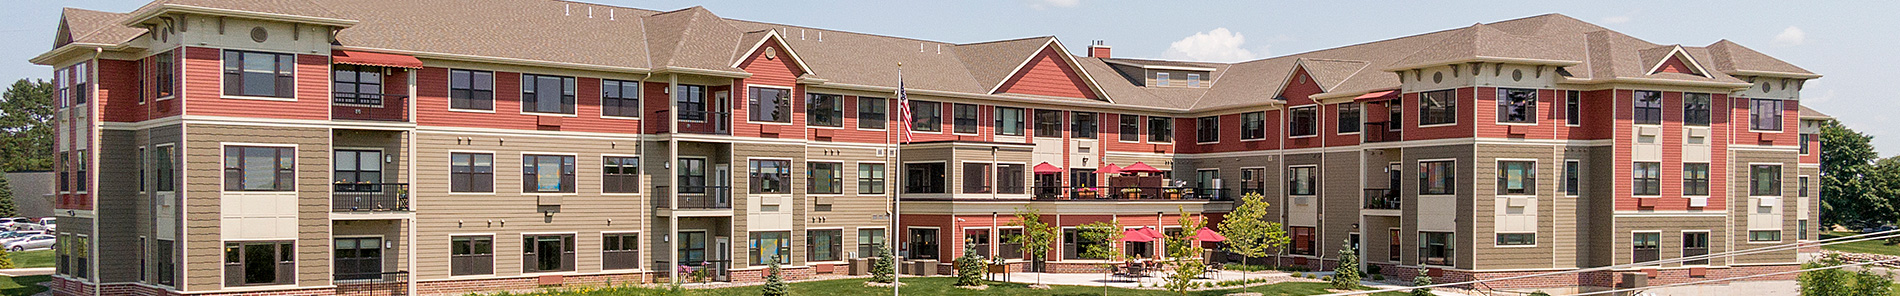 Senior Living communities and options